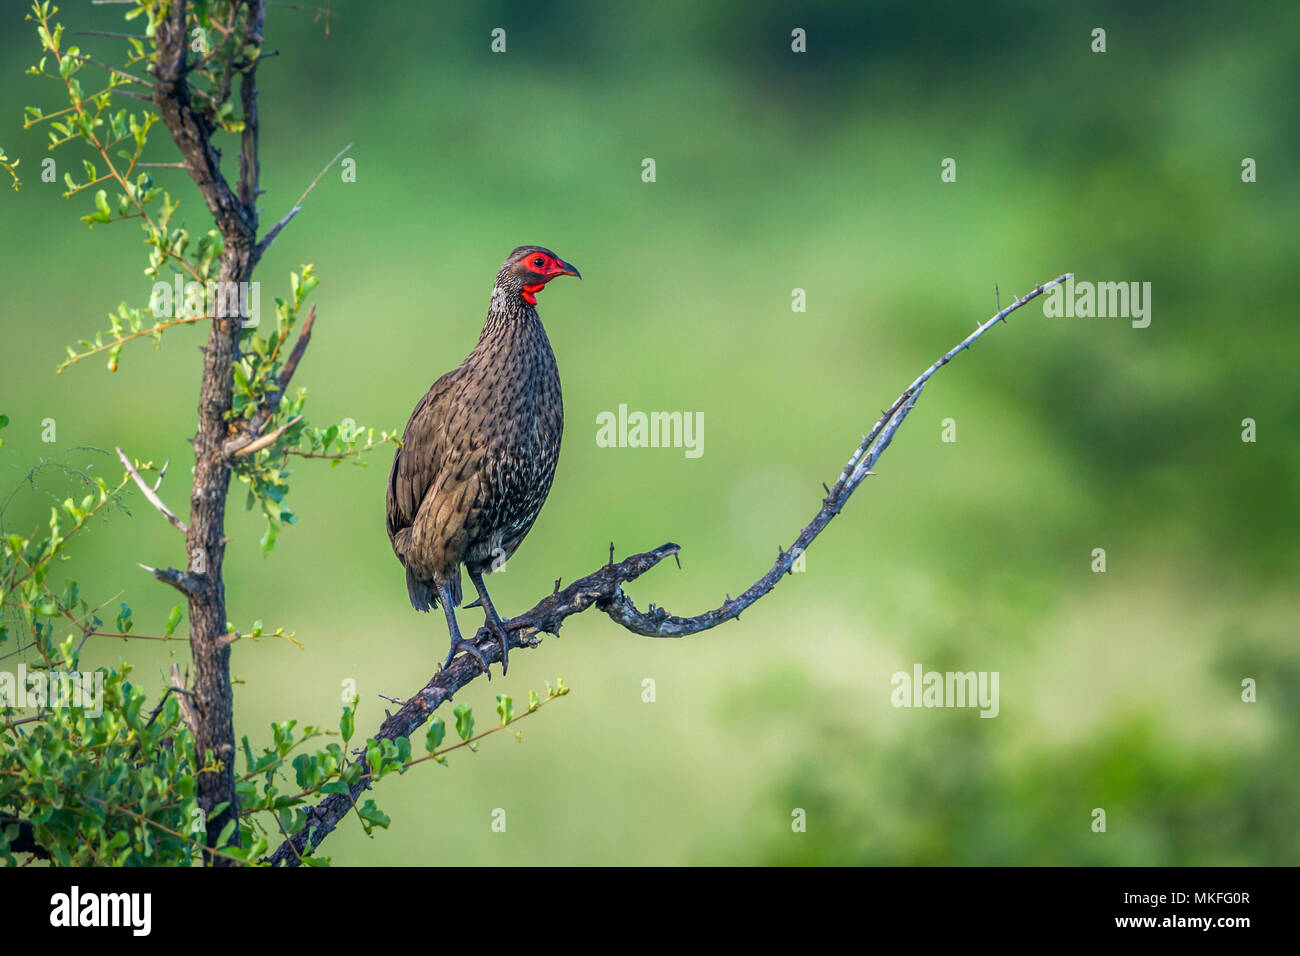 Swainson's Spurfowl (Pternistis swainsonii) on a branch, Kruger National park, South Africa - Stock Image